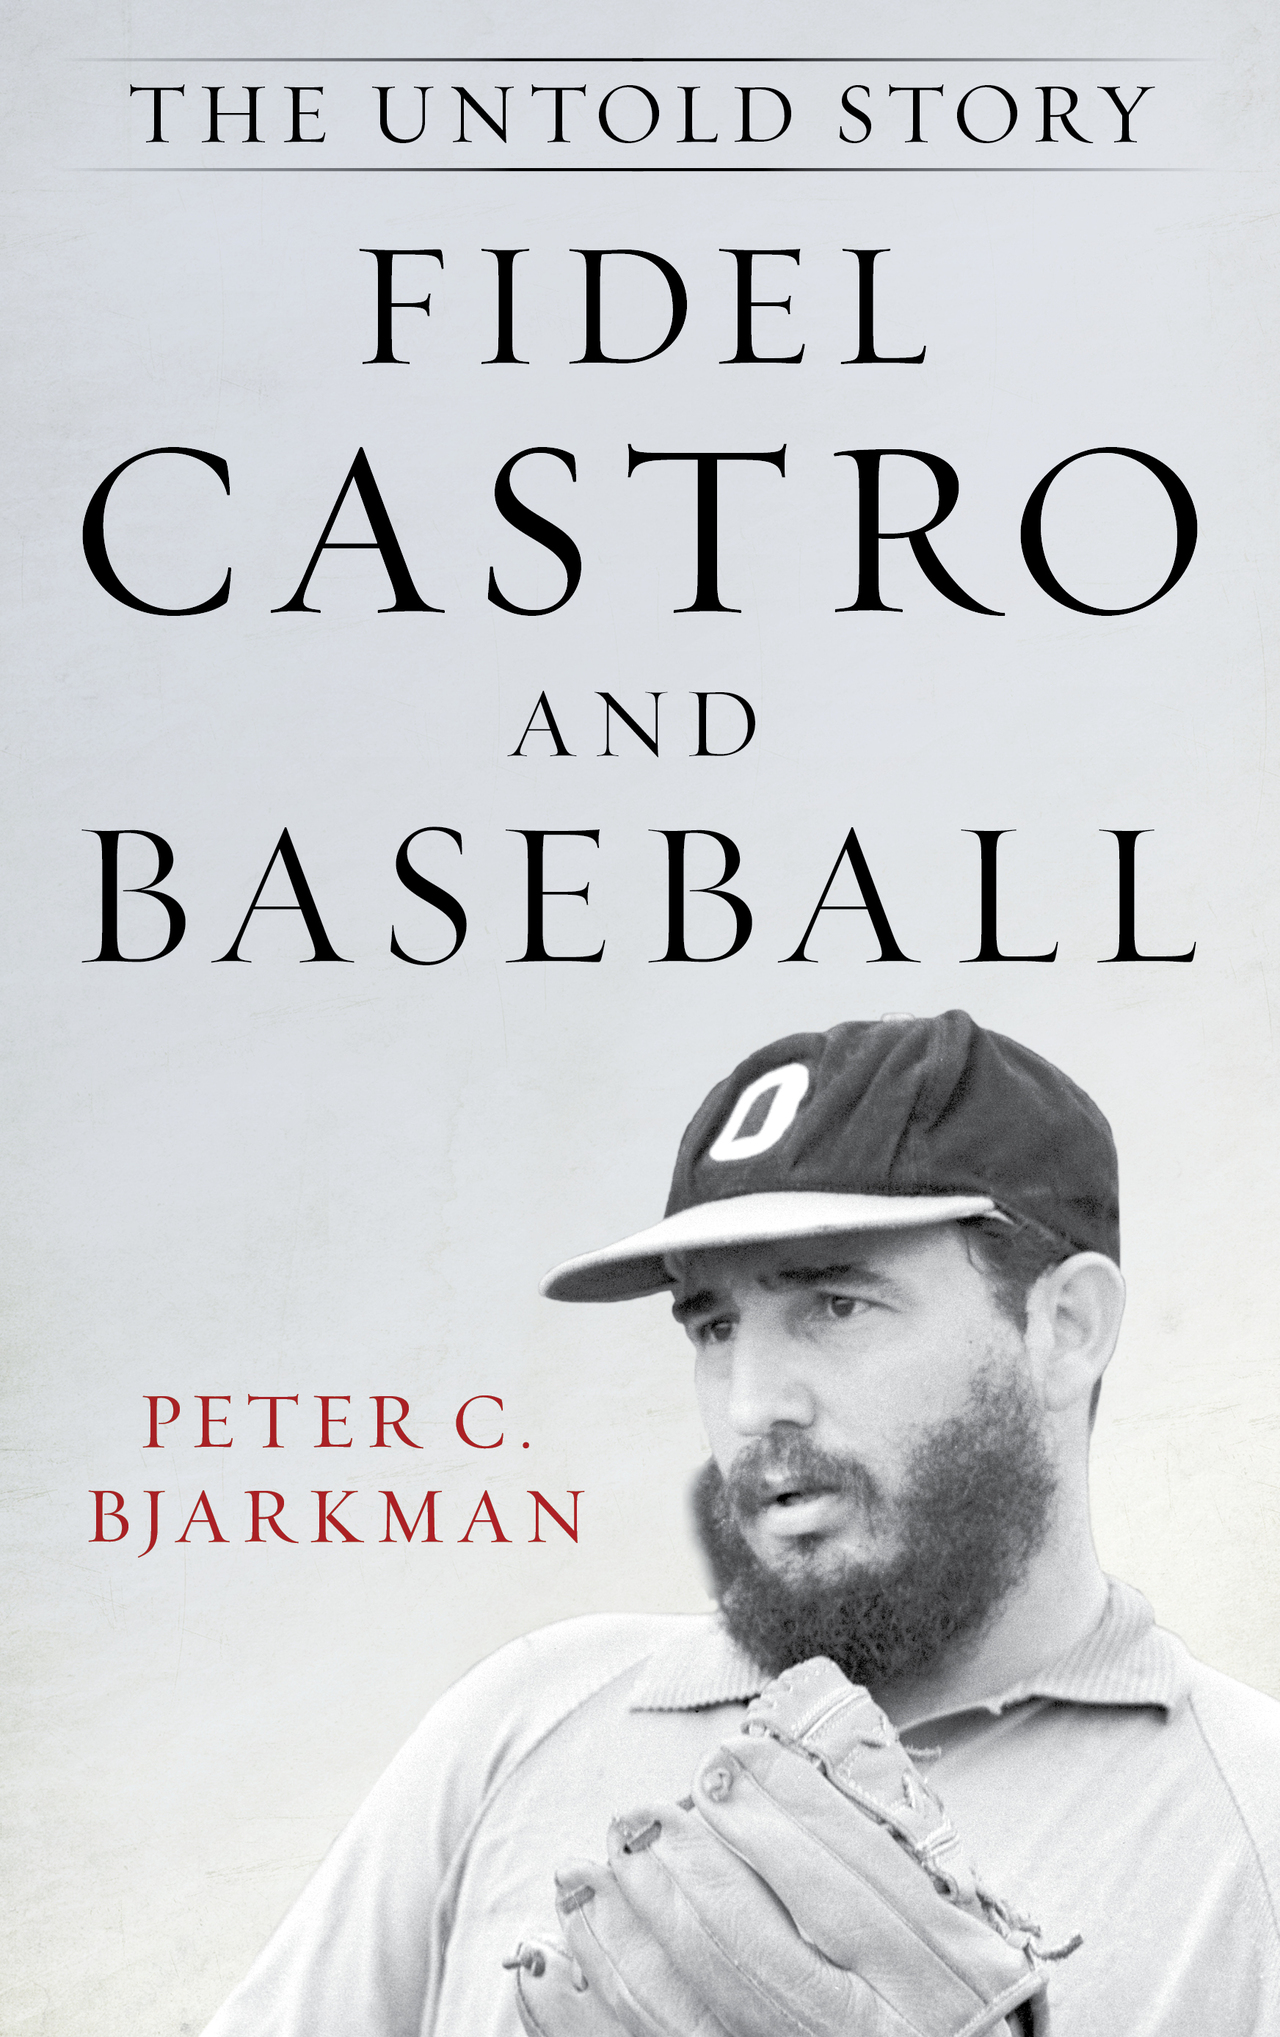 Bjarkman castro book cover